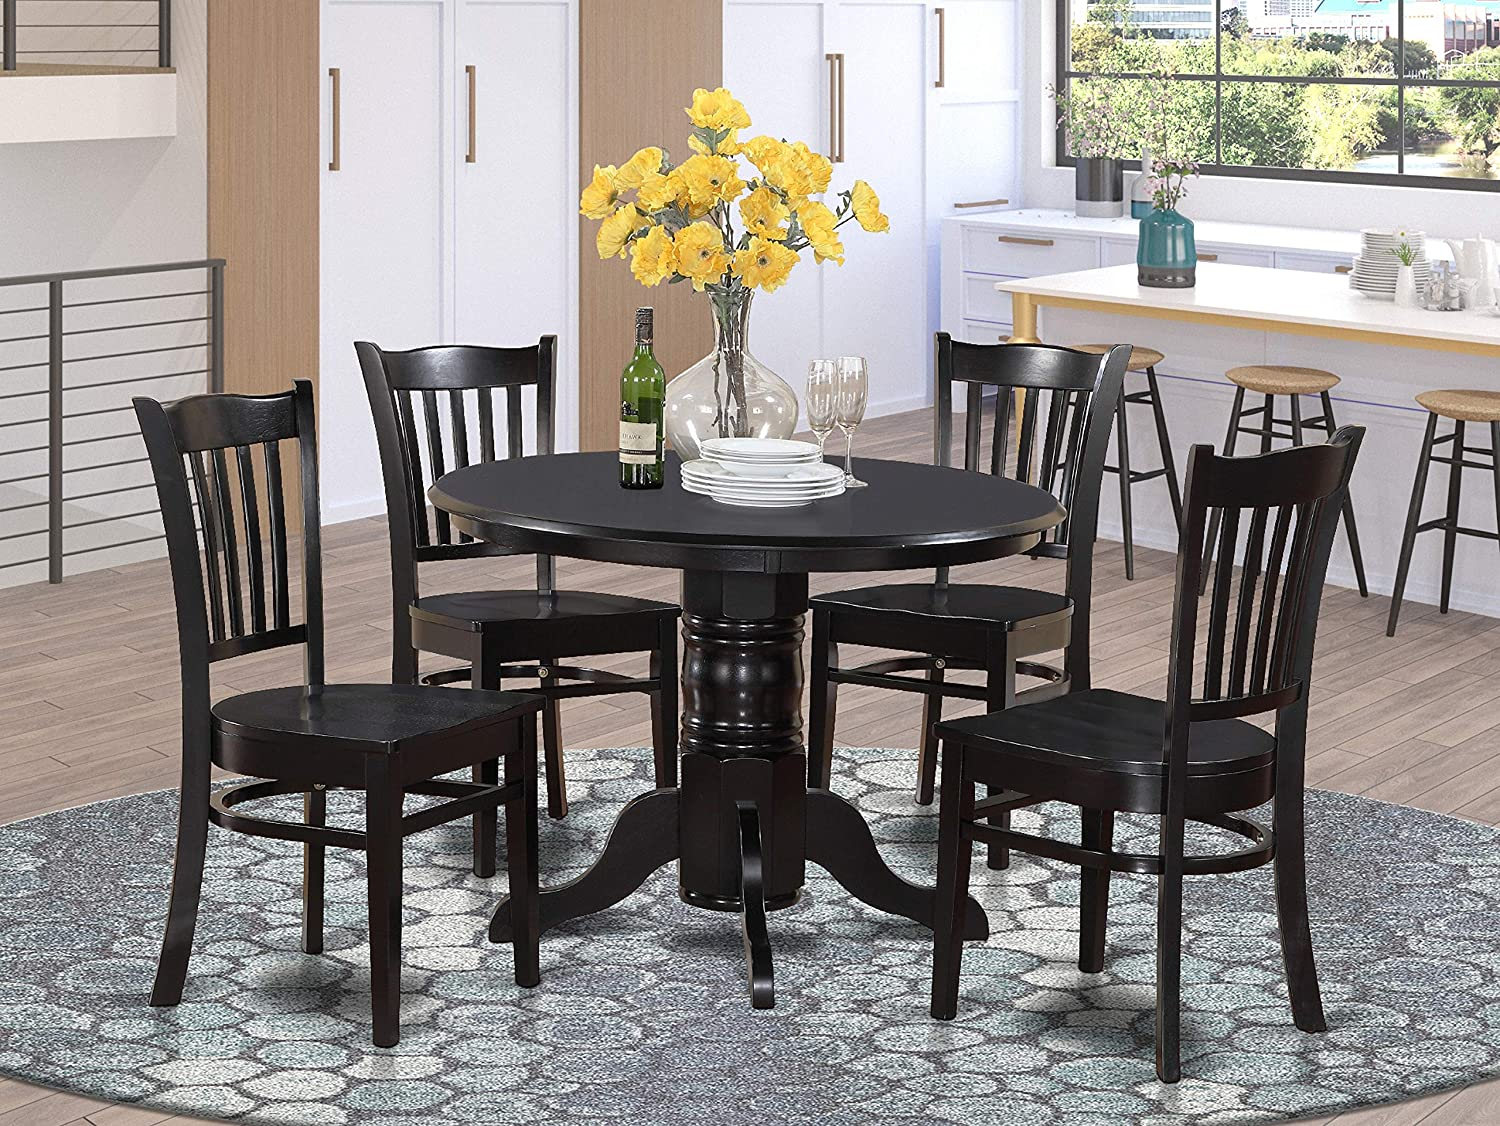 Amazon Com 5 Pc Small Kitchen Table Set Round Table And 4 Dining Chairs Furniture Decor